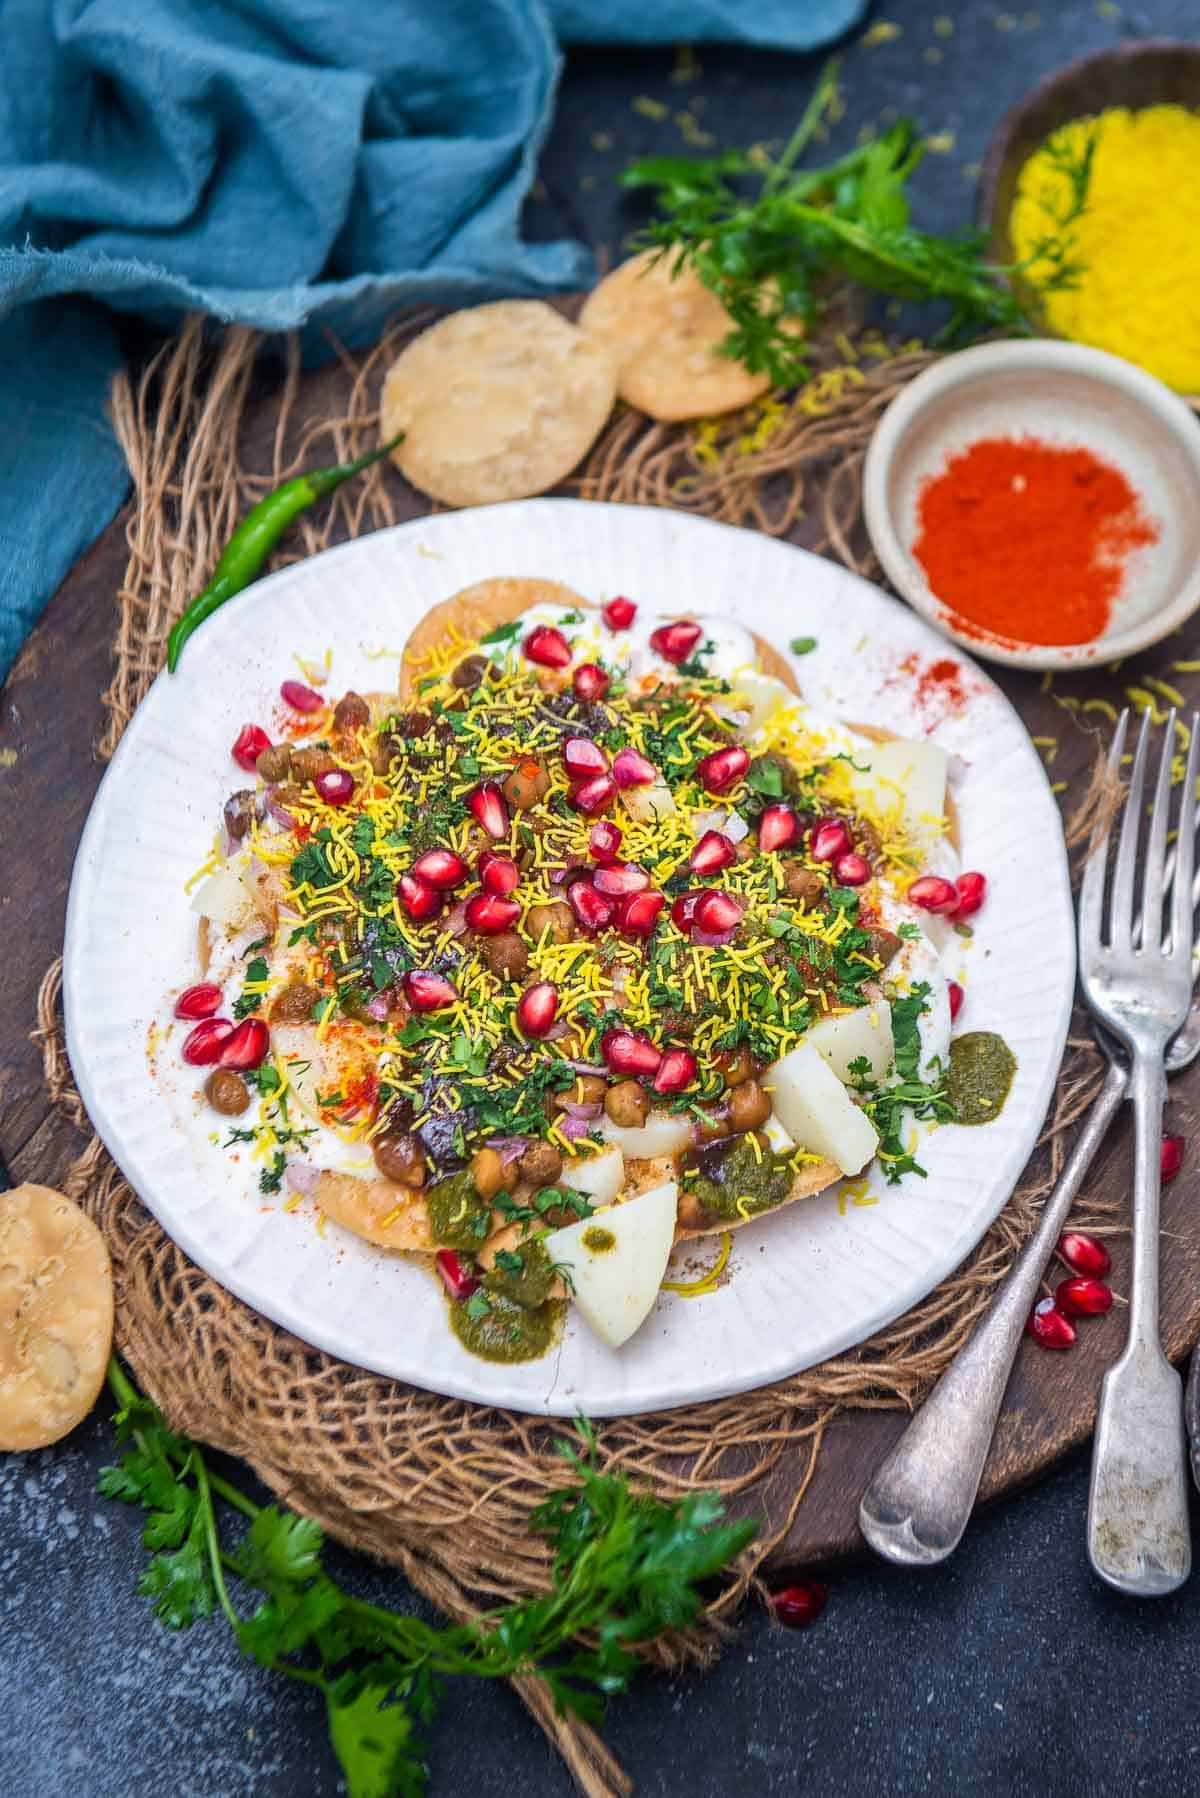 Papdi chaat served on a plate.